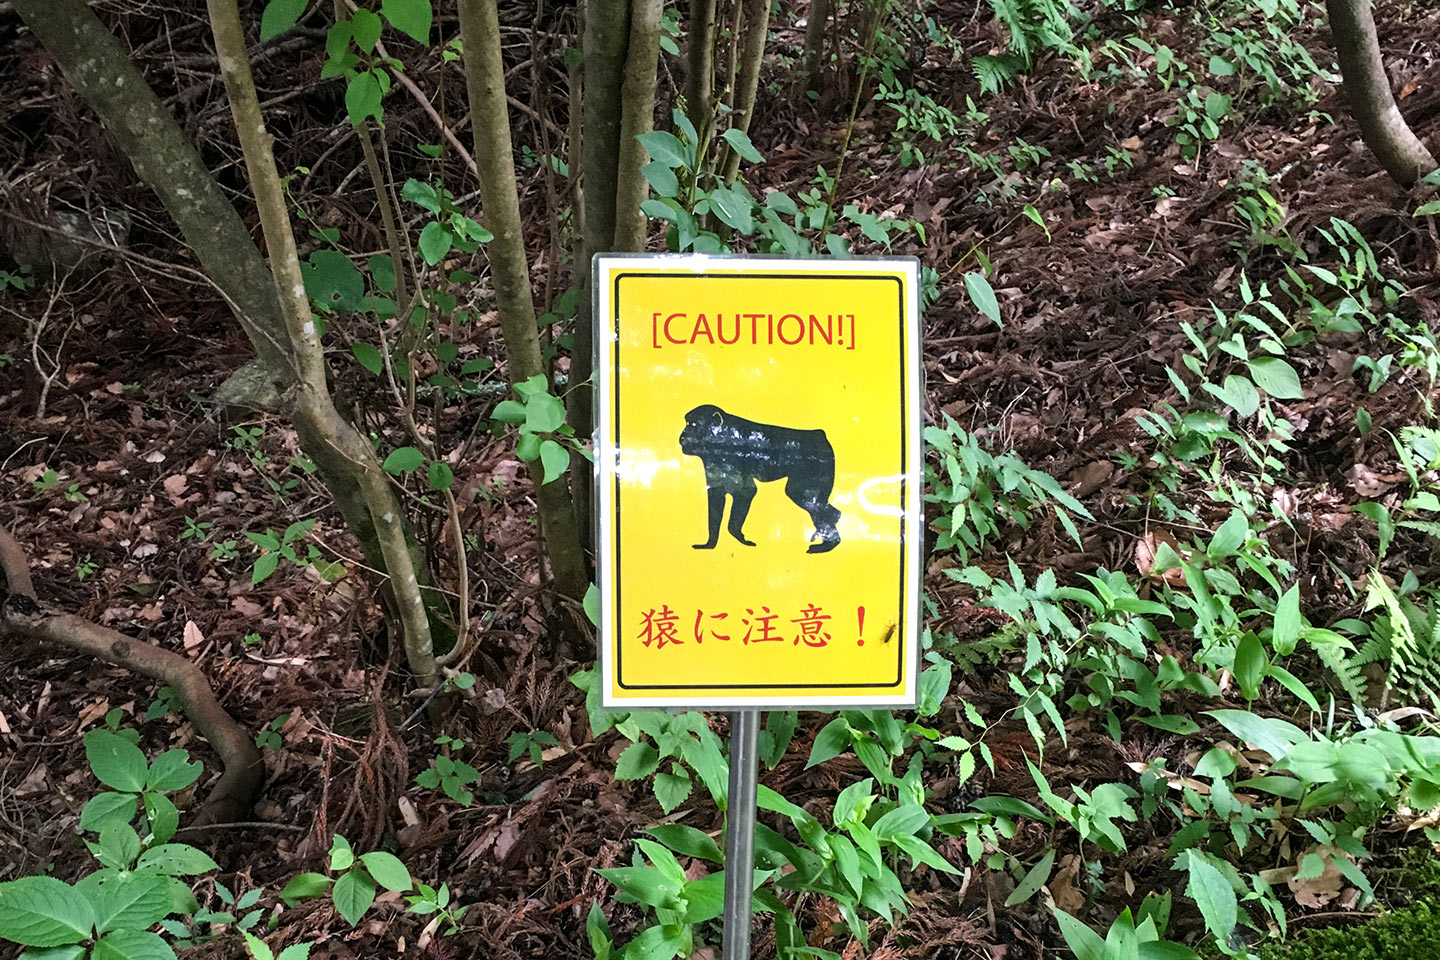 Caution! Monkeys!